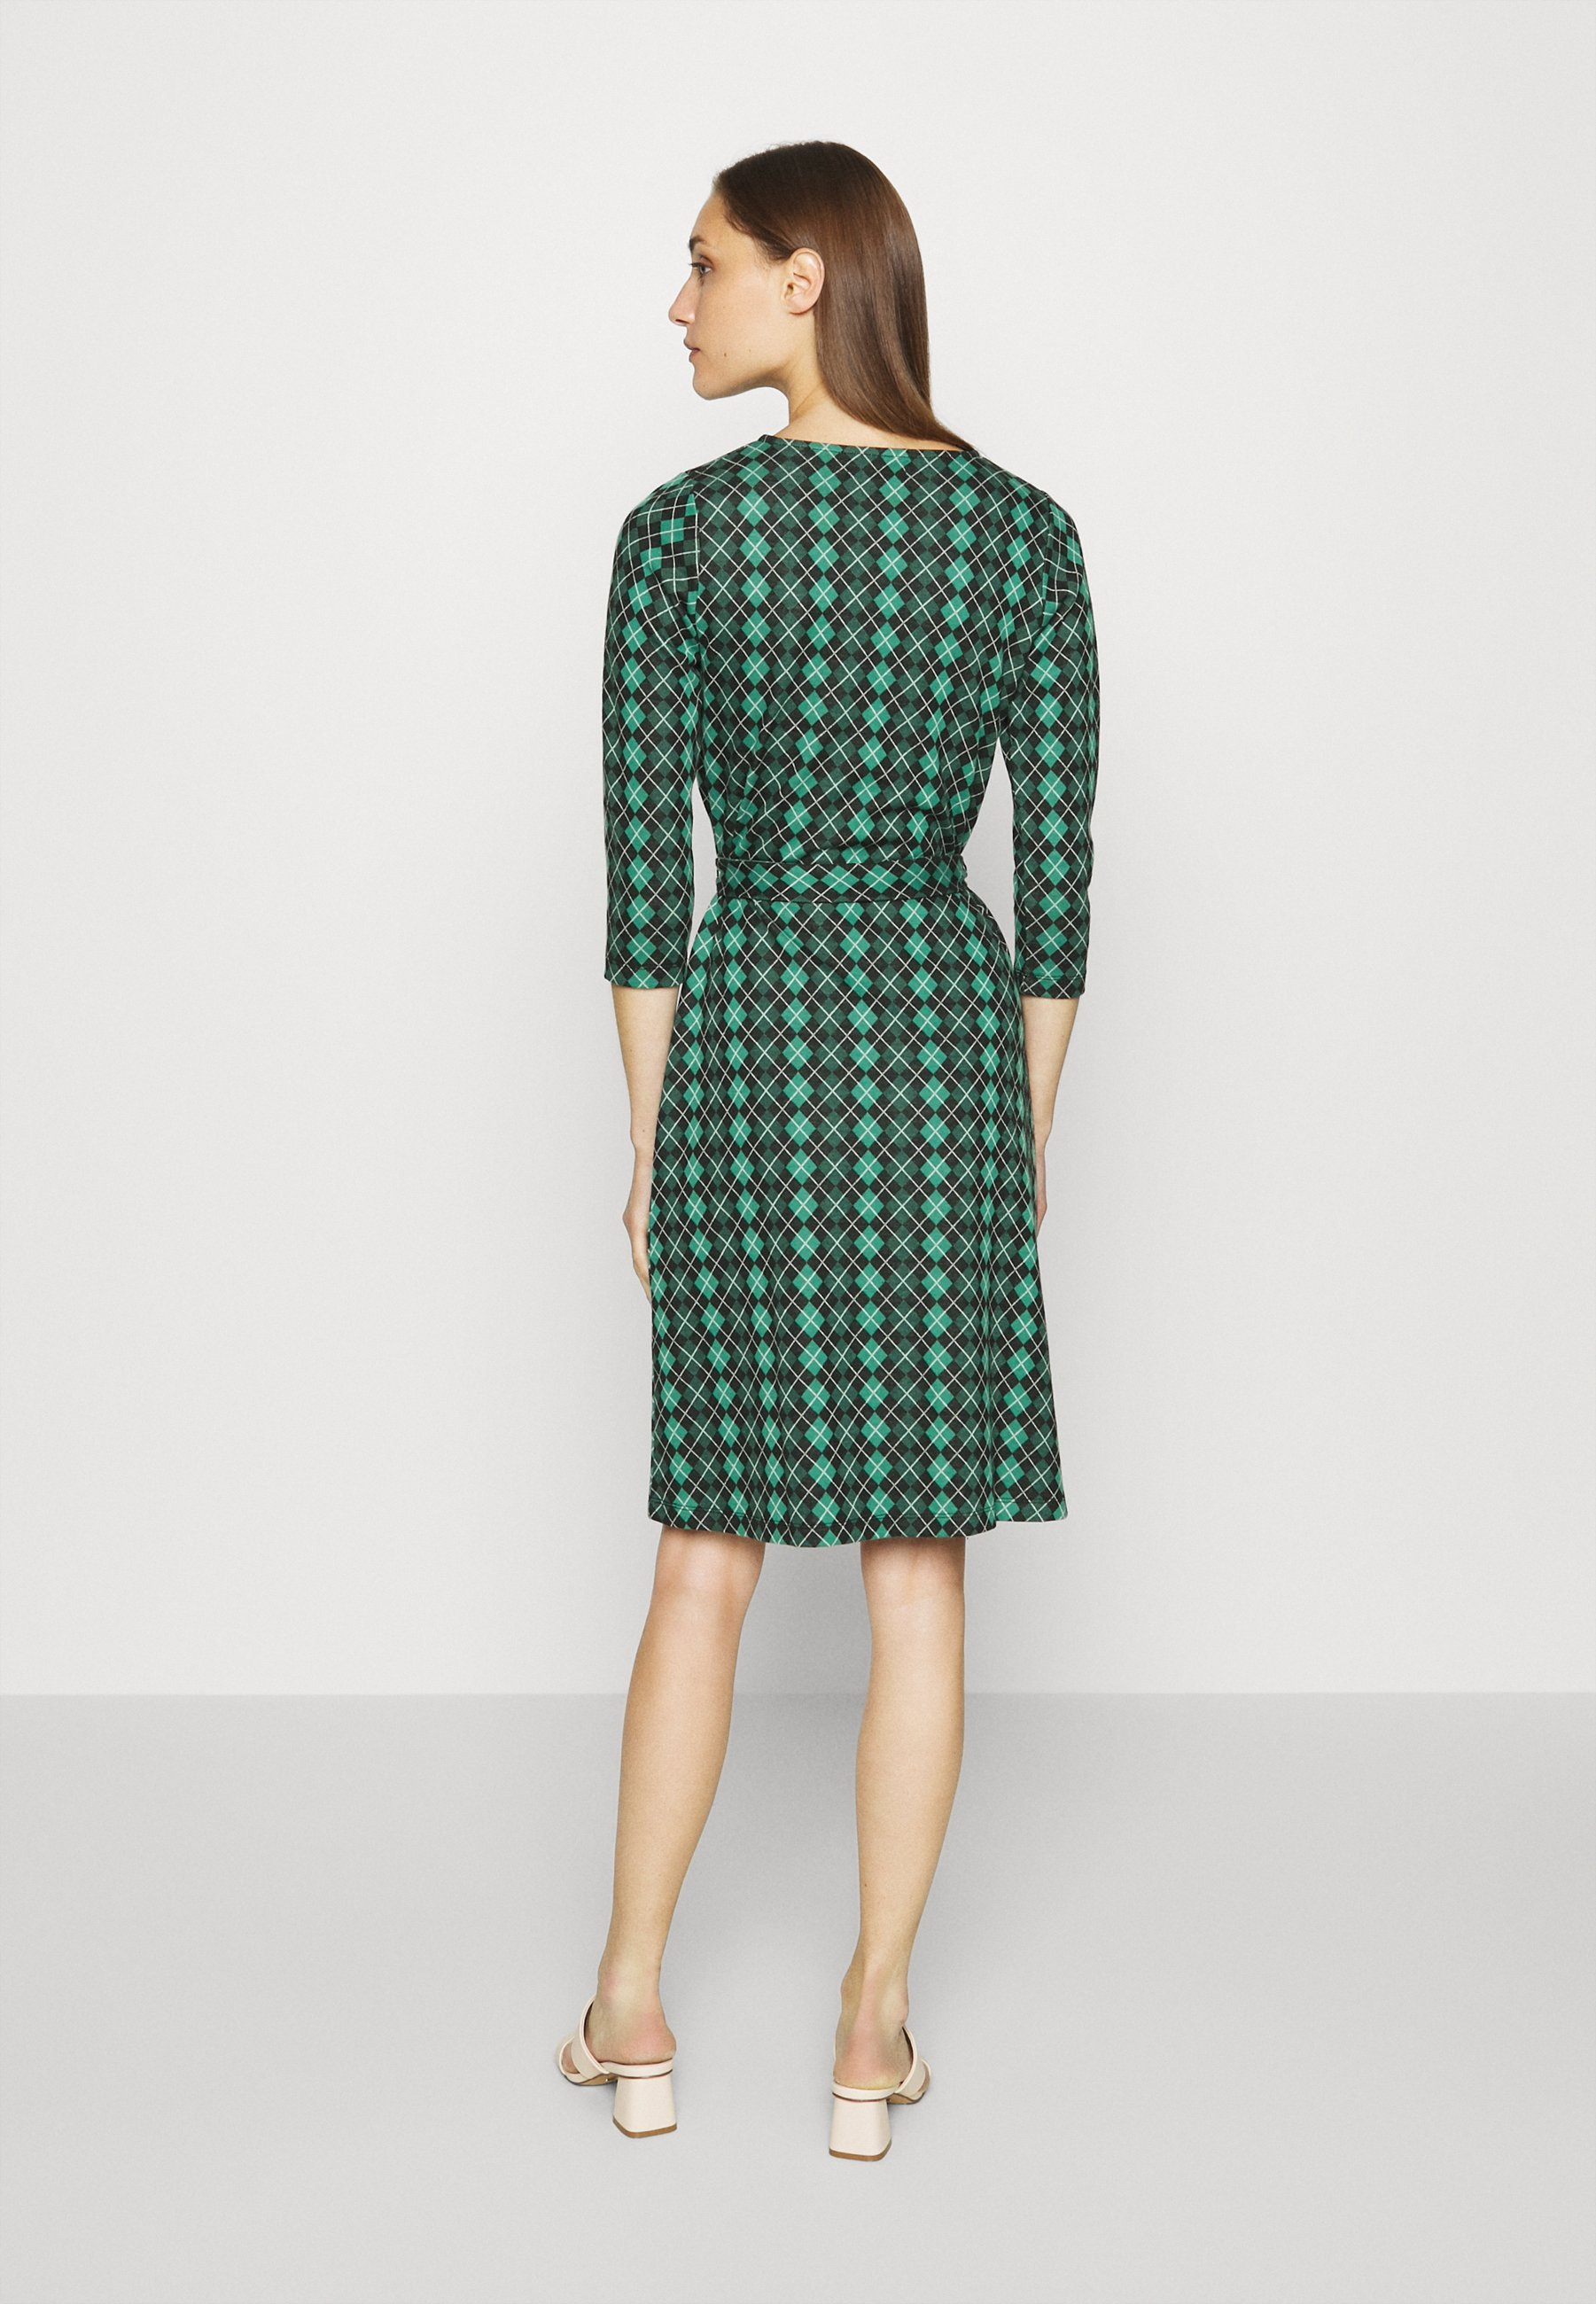 King Louie HAILEY DRESS ABERDEEN Freizeitkleid fir green/türkis